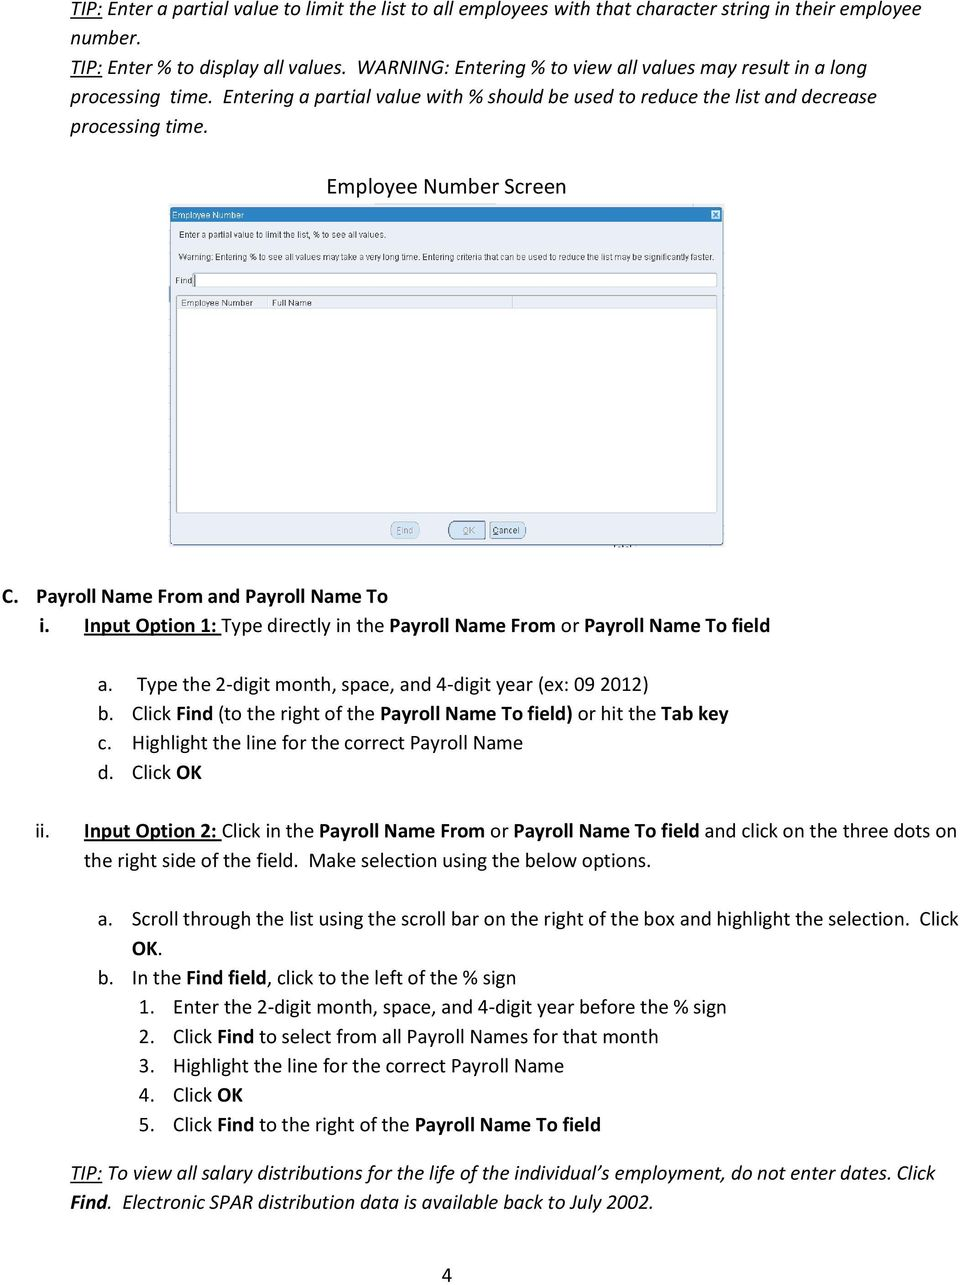 Payroll Name From and Payroll Name To i. Input Option 1: Type directly in the Payroll Name From or Payroll Name To field a. Type the 2-digit month, space, and 4-digit year (ex: 09 2012) b.